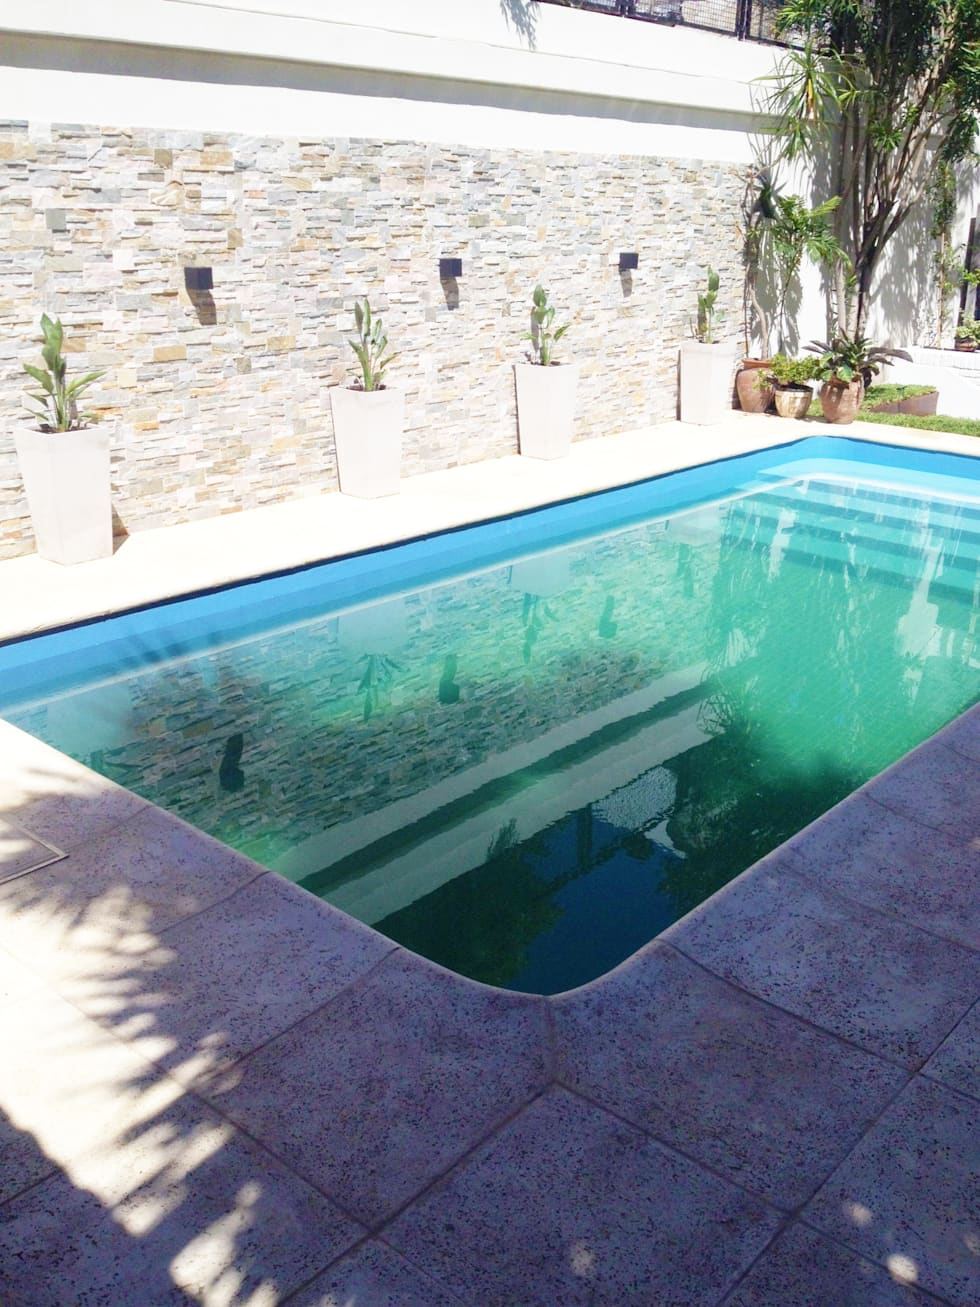 Im genes de decoraci n y dise o de interiores homify for Piscina espacio reducido